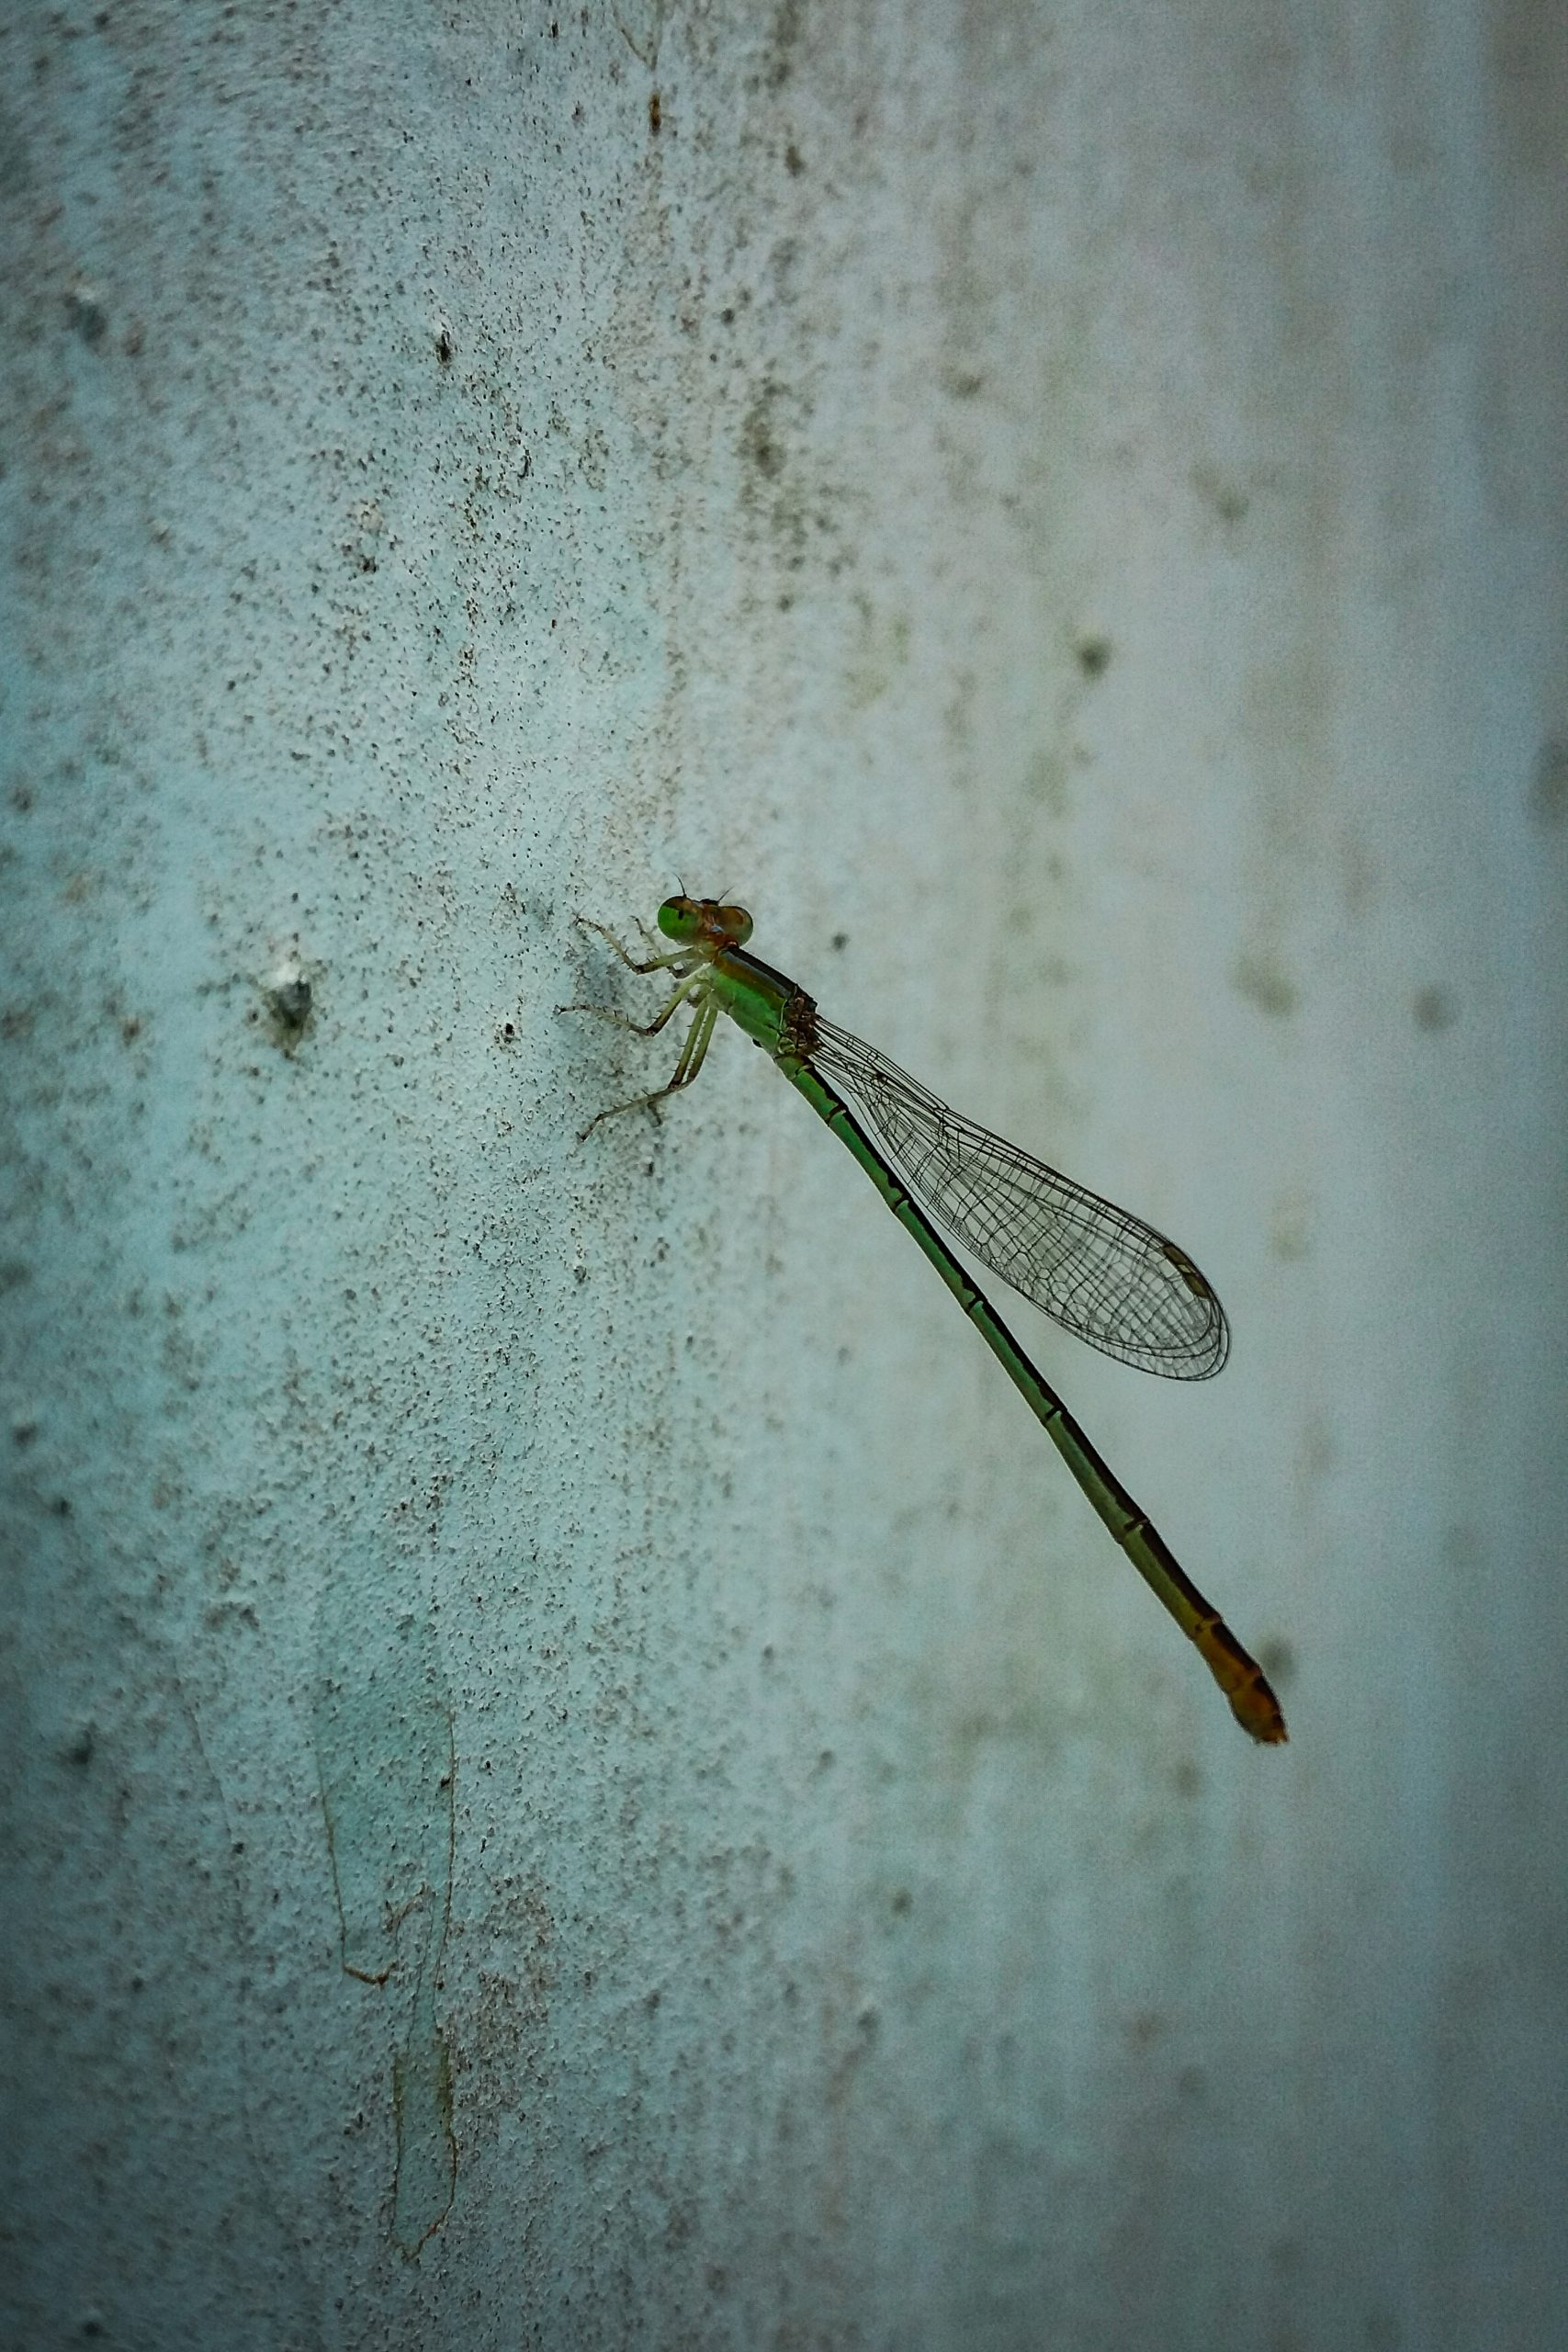 Damselfly in the Wall on Focus